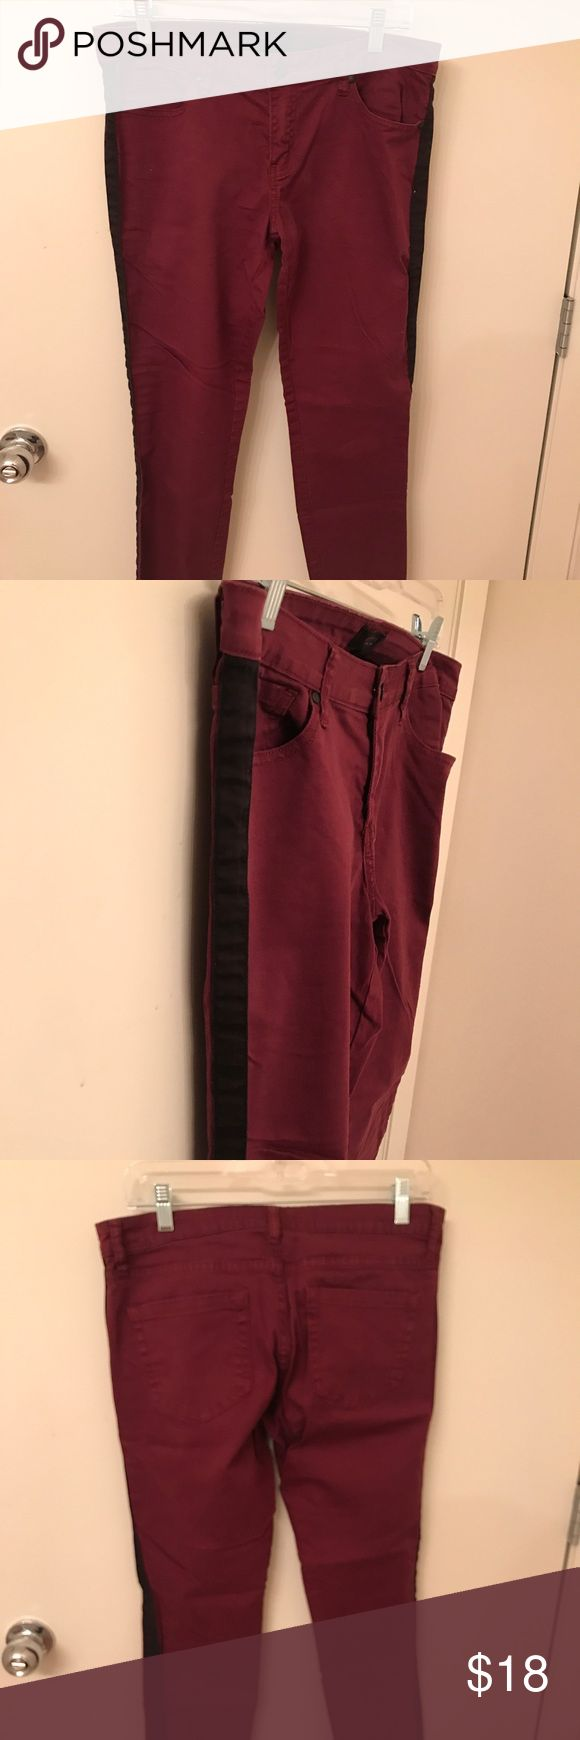 Maroon skinny jeans with black side stripe Maroon skinny jeans with black side stripe. Very flattering on! Forever 21 Jeans Skinny